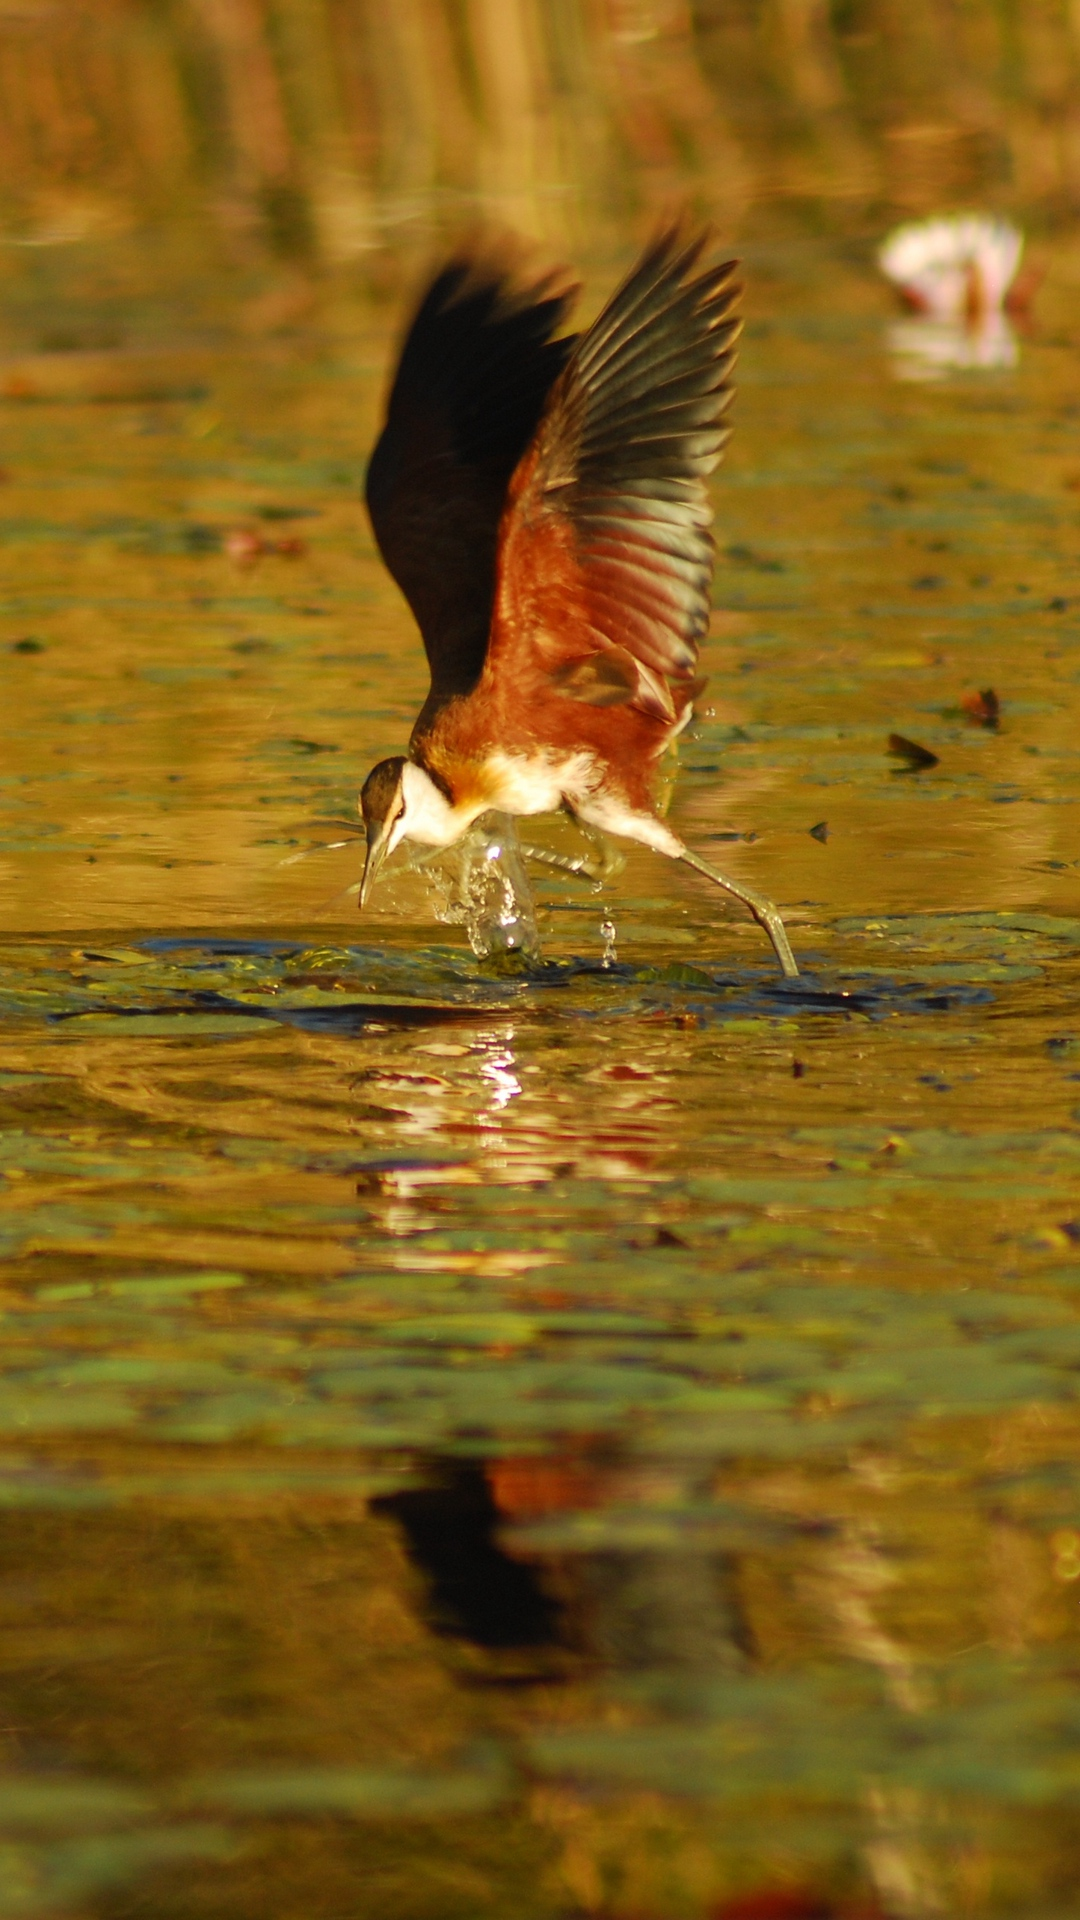 Download wallpaper 1080x1920 botswana bird africa flight 1080x1920